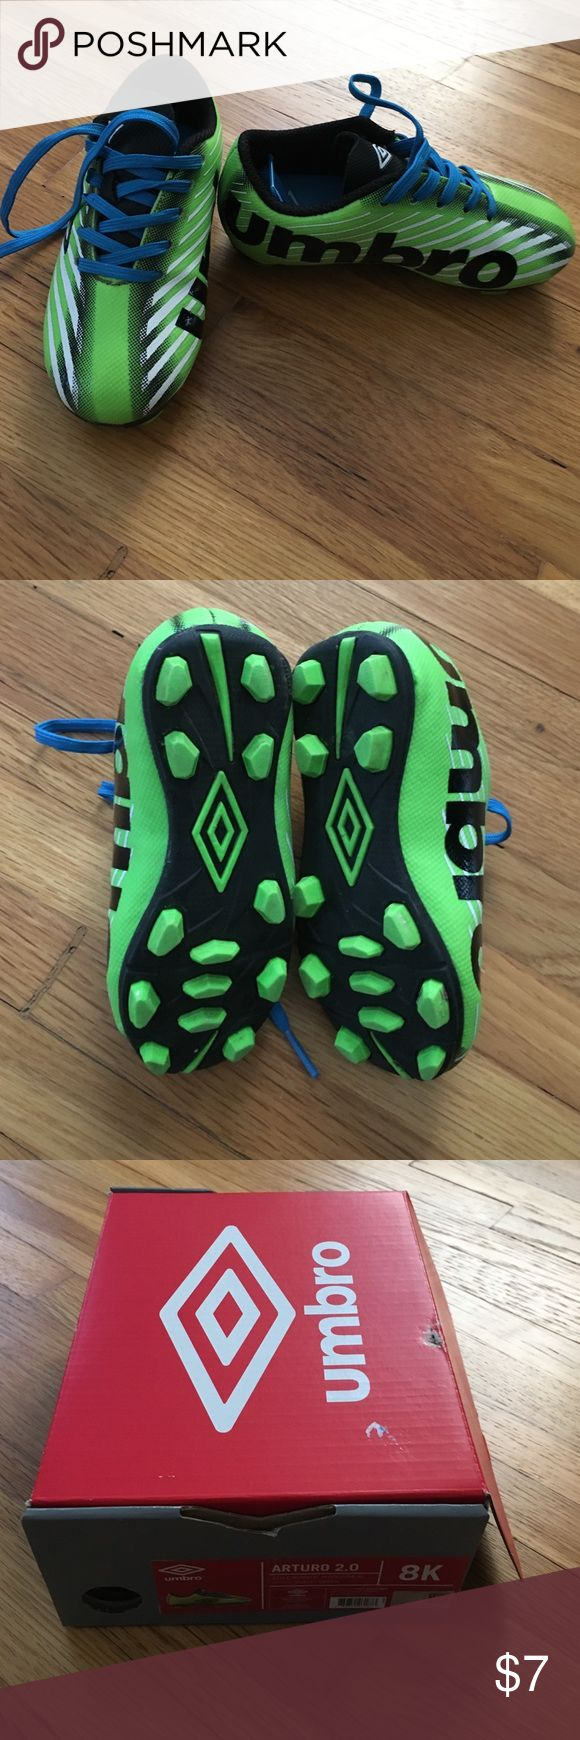 Toddler Boys Soccer Cleats Toddler boys soccer cleats. Umbro. Size 8. Worn once. Comes in box. Umbro Shoes